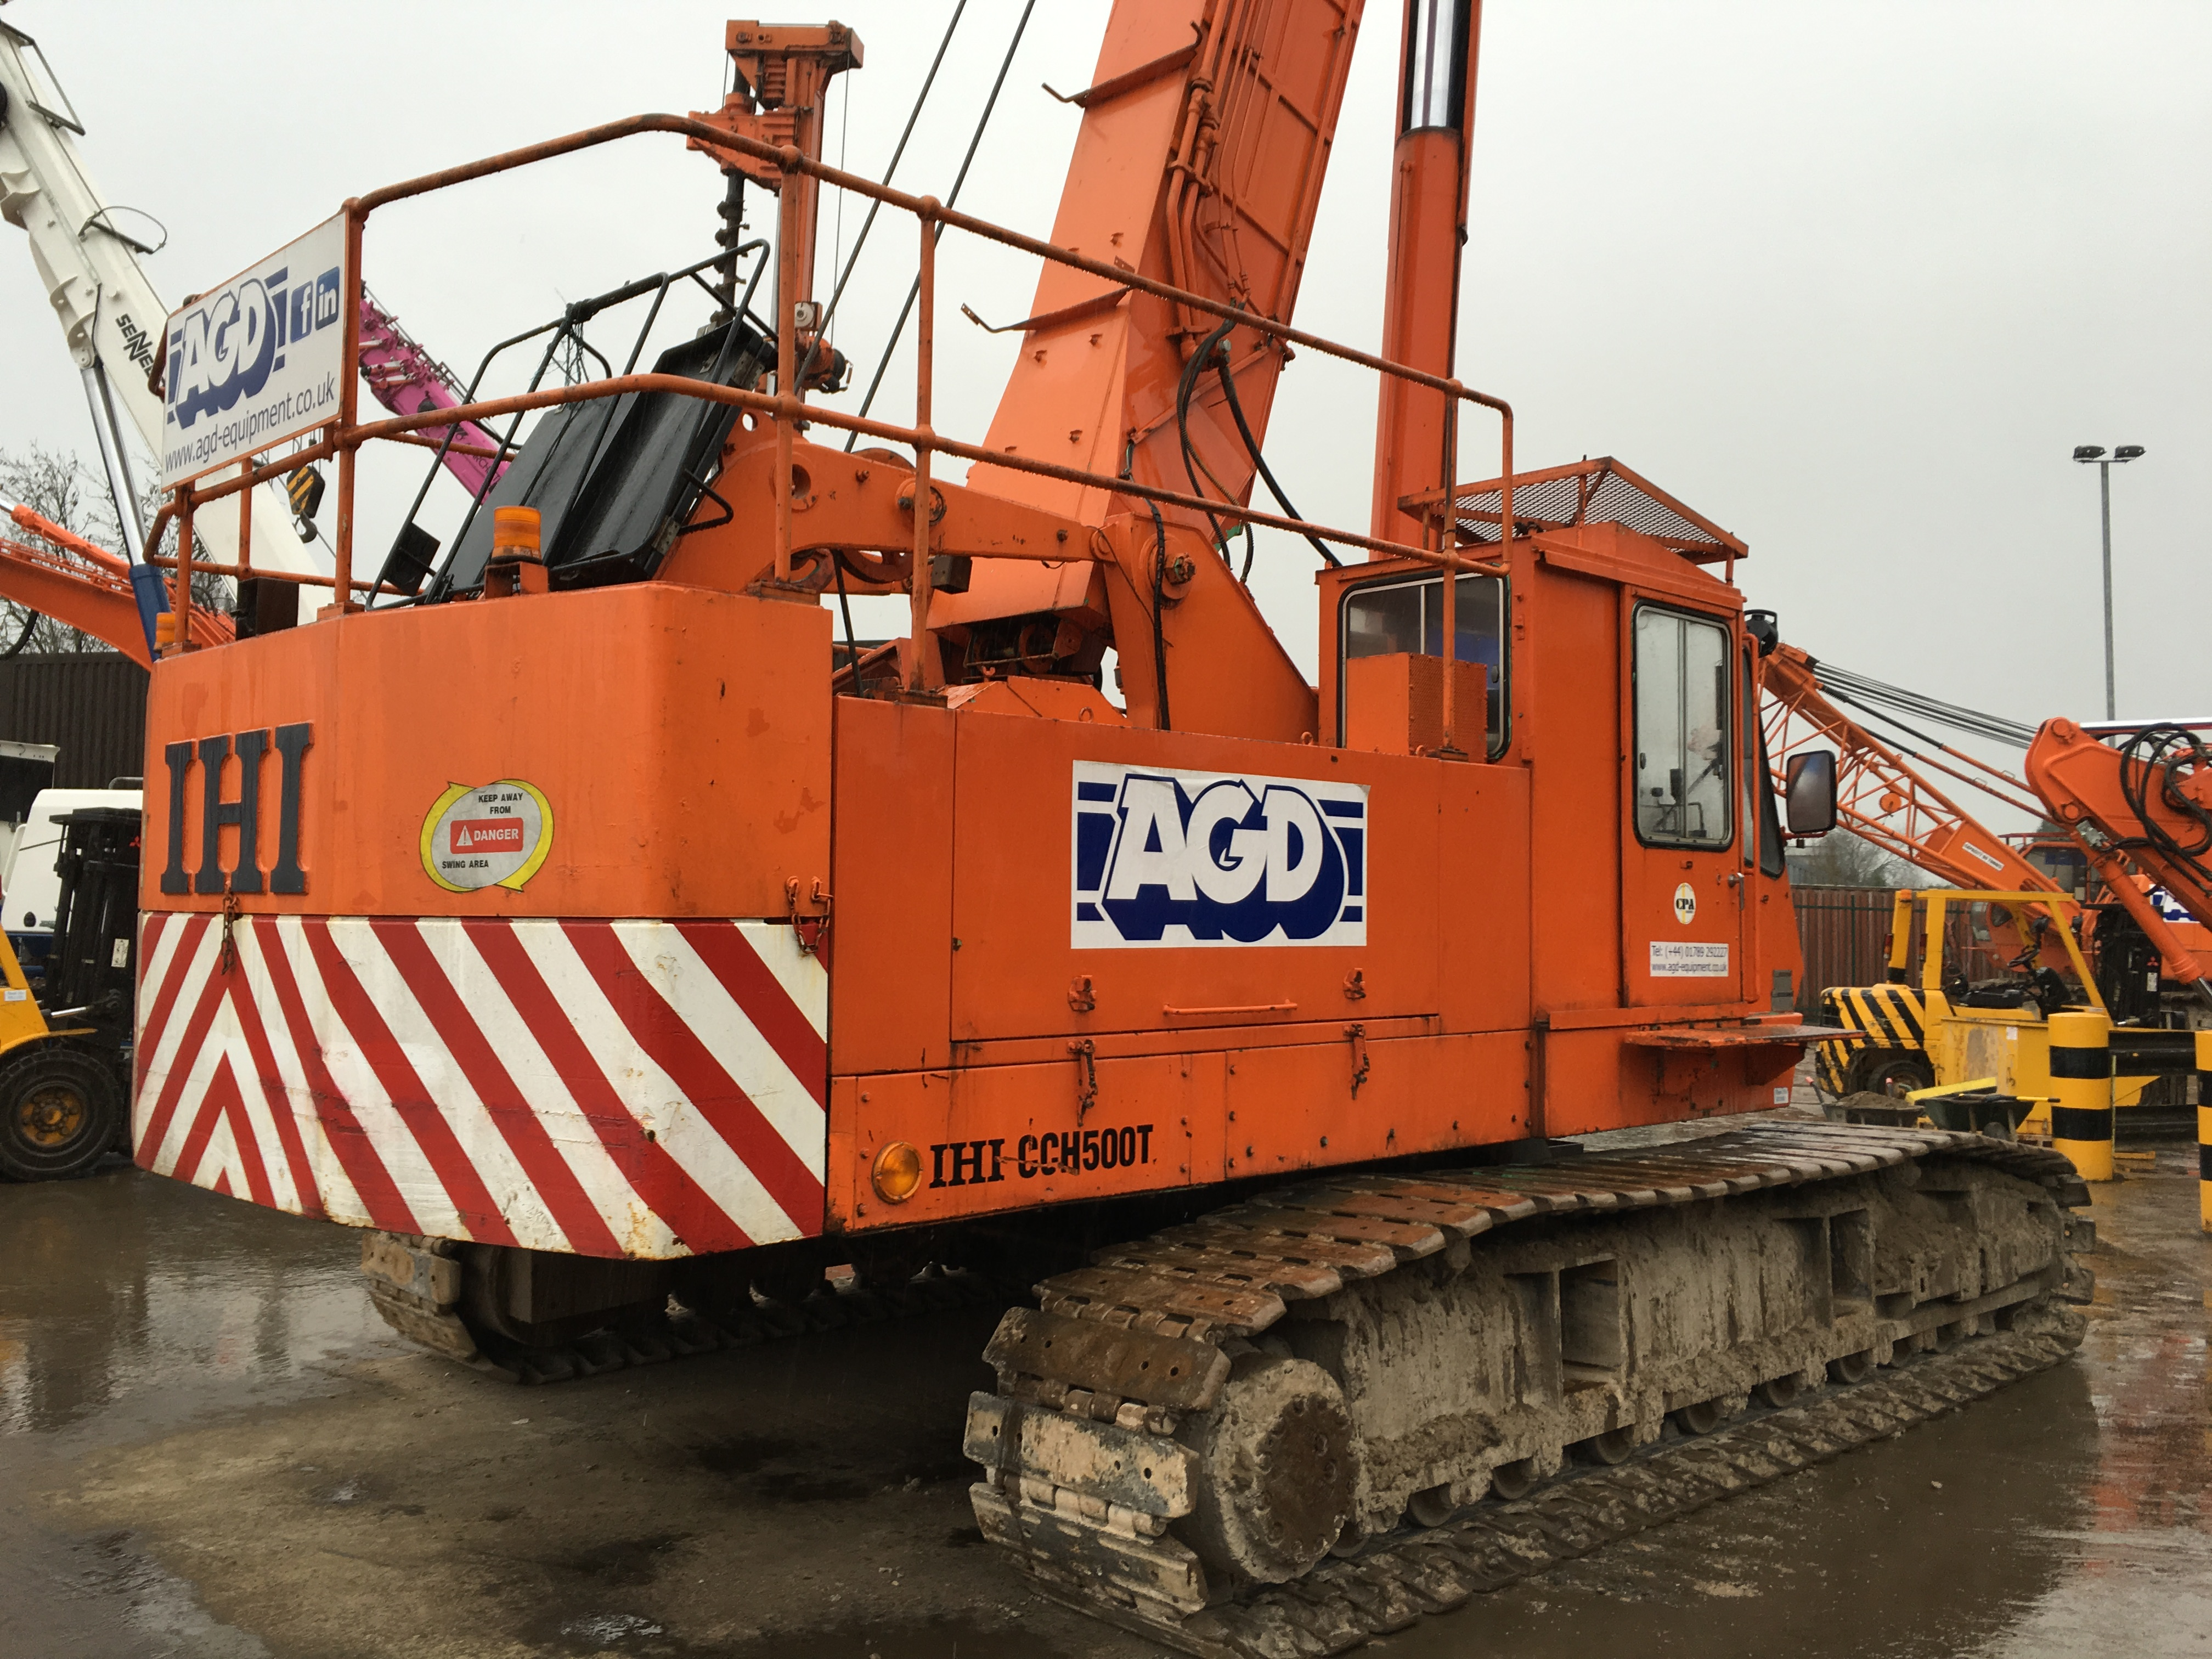 Used telescopic crawler cranes for sale